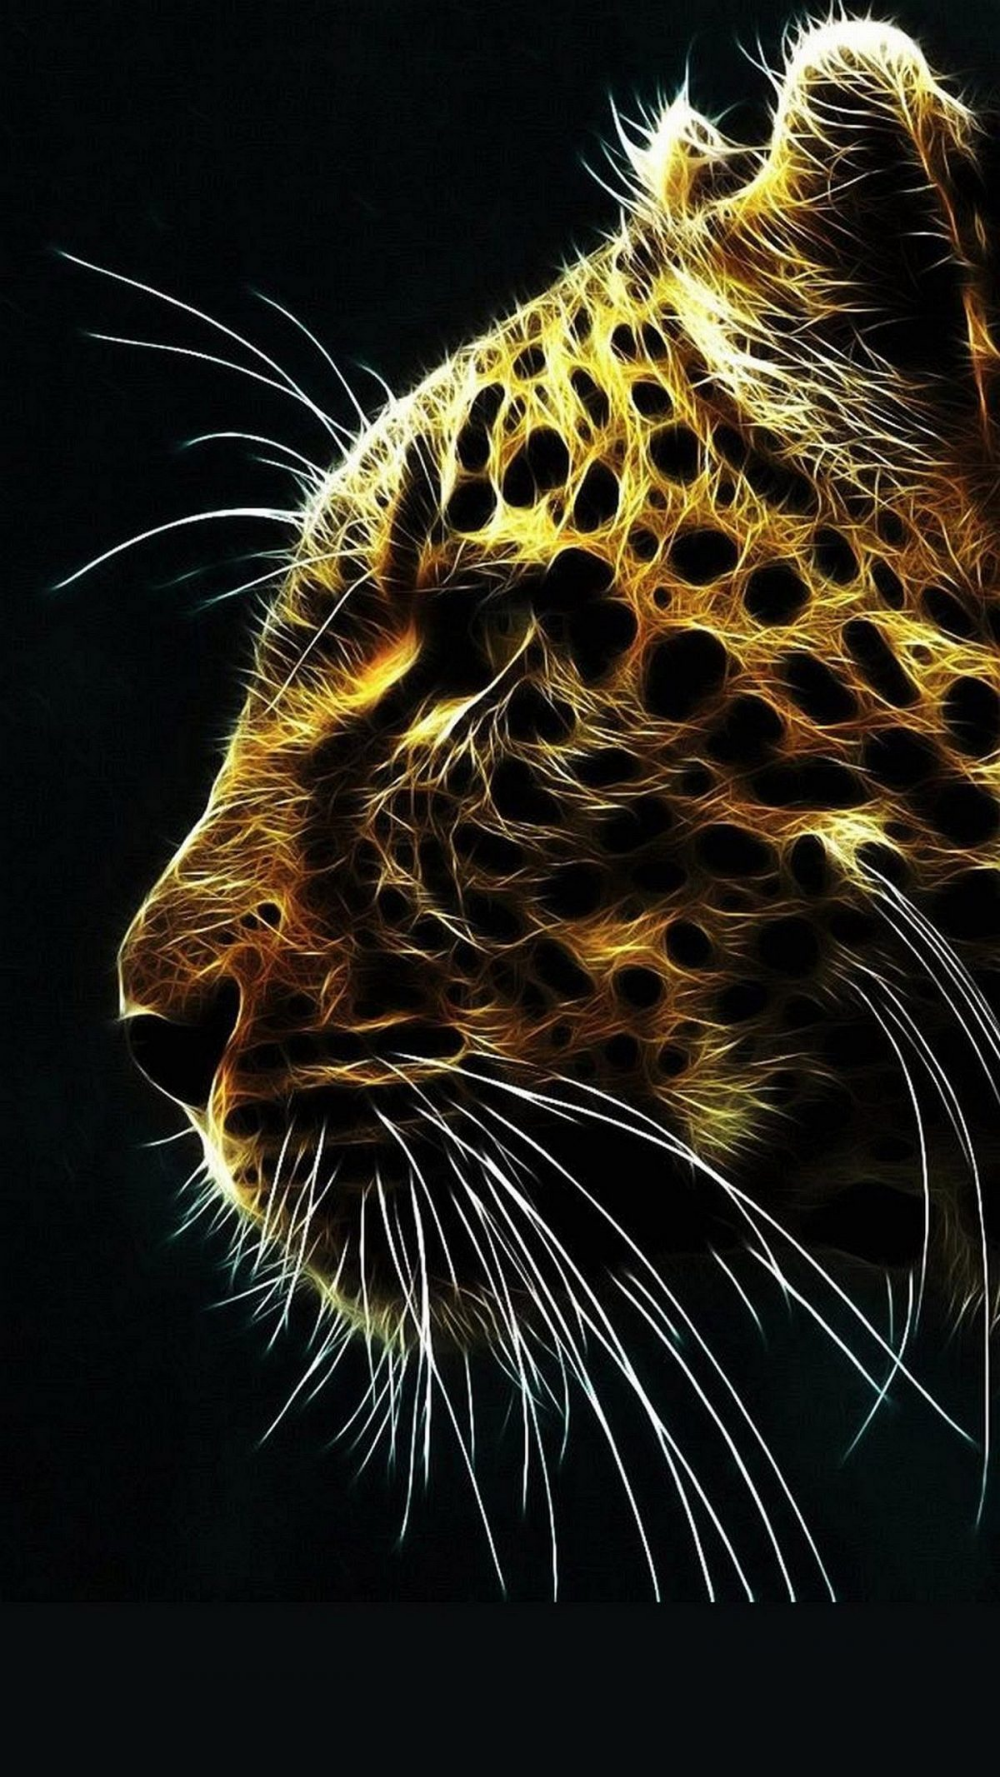 Photography Works Are Also Very Good Mobile Wallpaper Materials Page 49 Of 49 Cool Iphone Wallpapers Hd Leopard Wallpaper Tiger Wallpaper